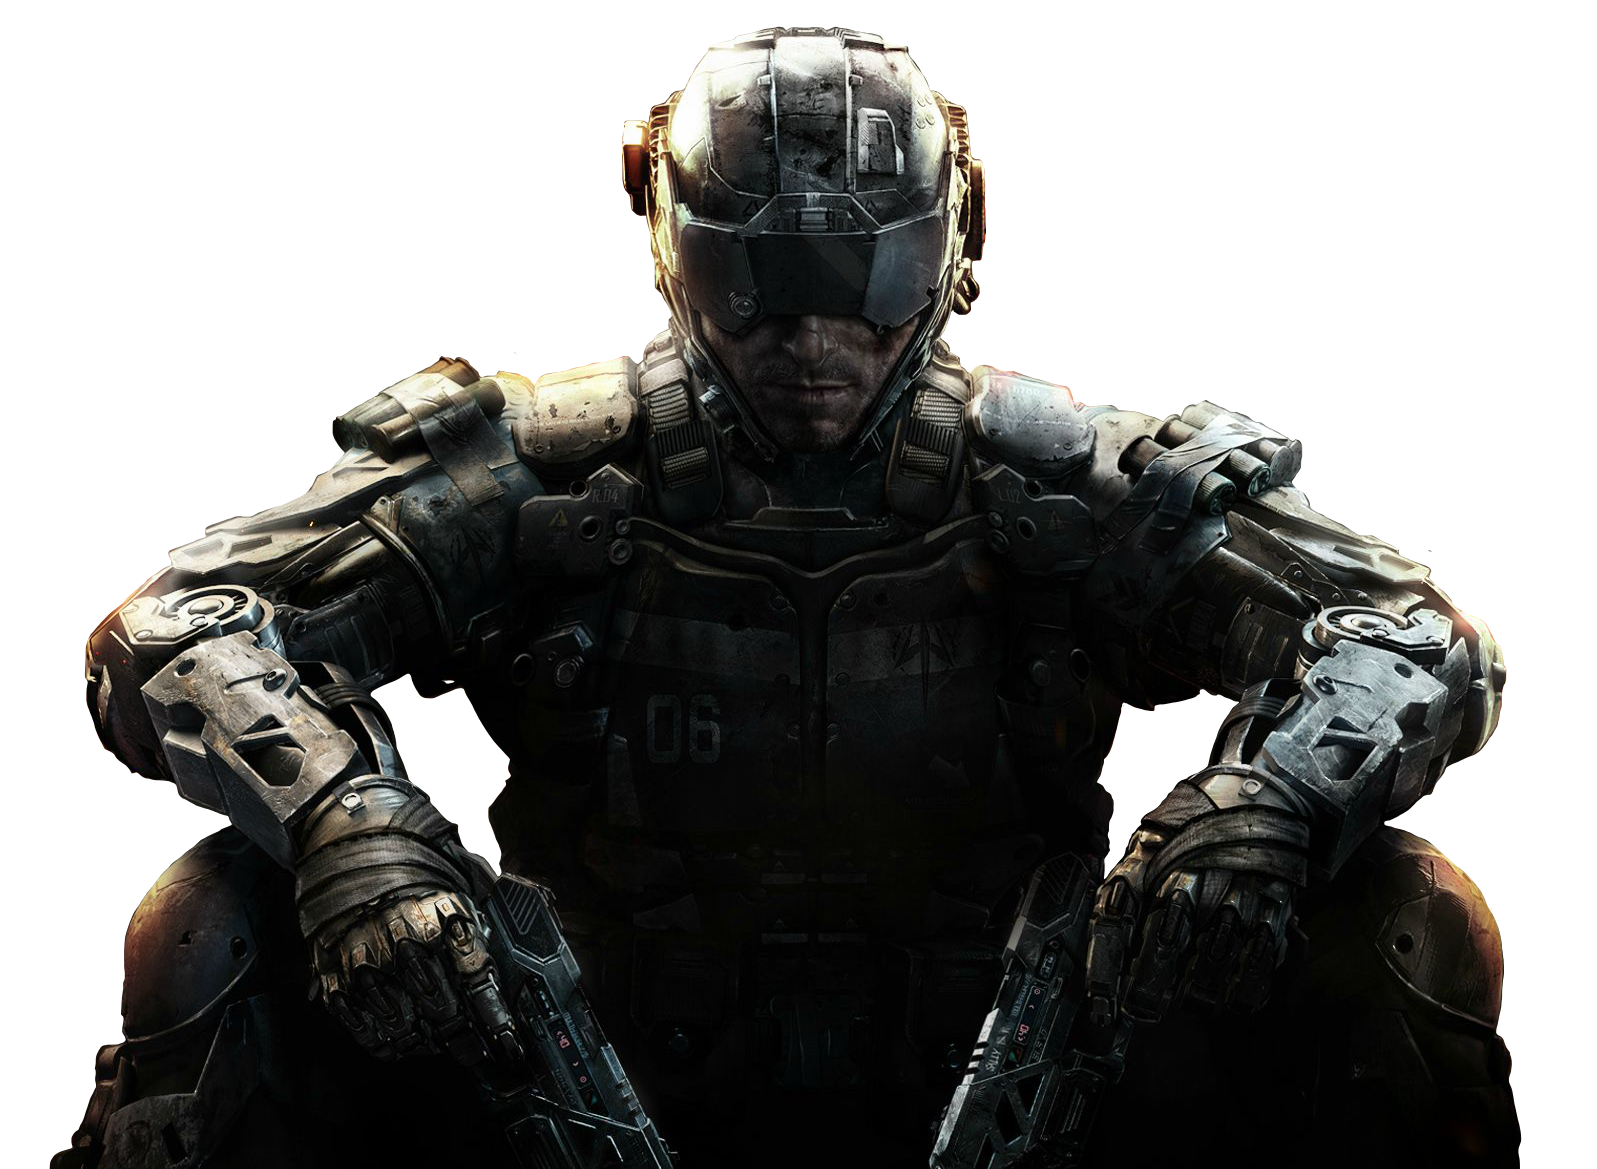 call of duty black ops 3 cover soldier render by brovvnie d8rfcpk 1597x1169